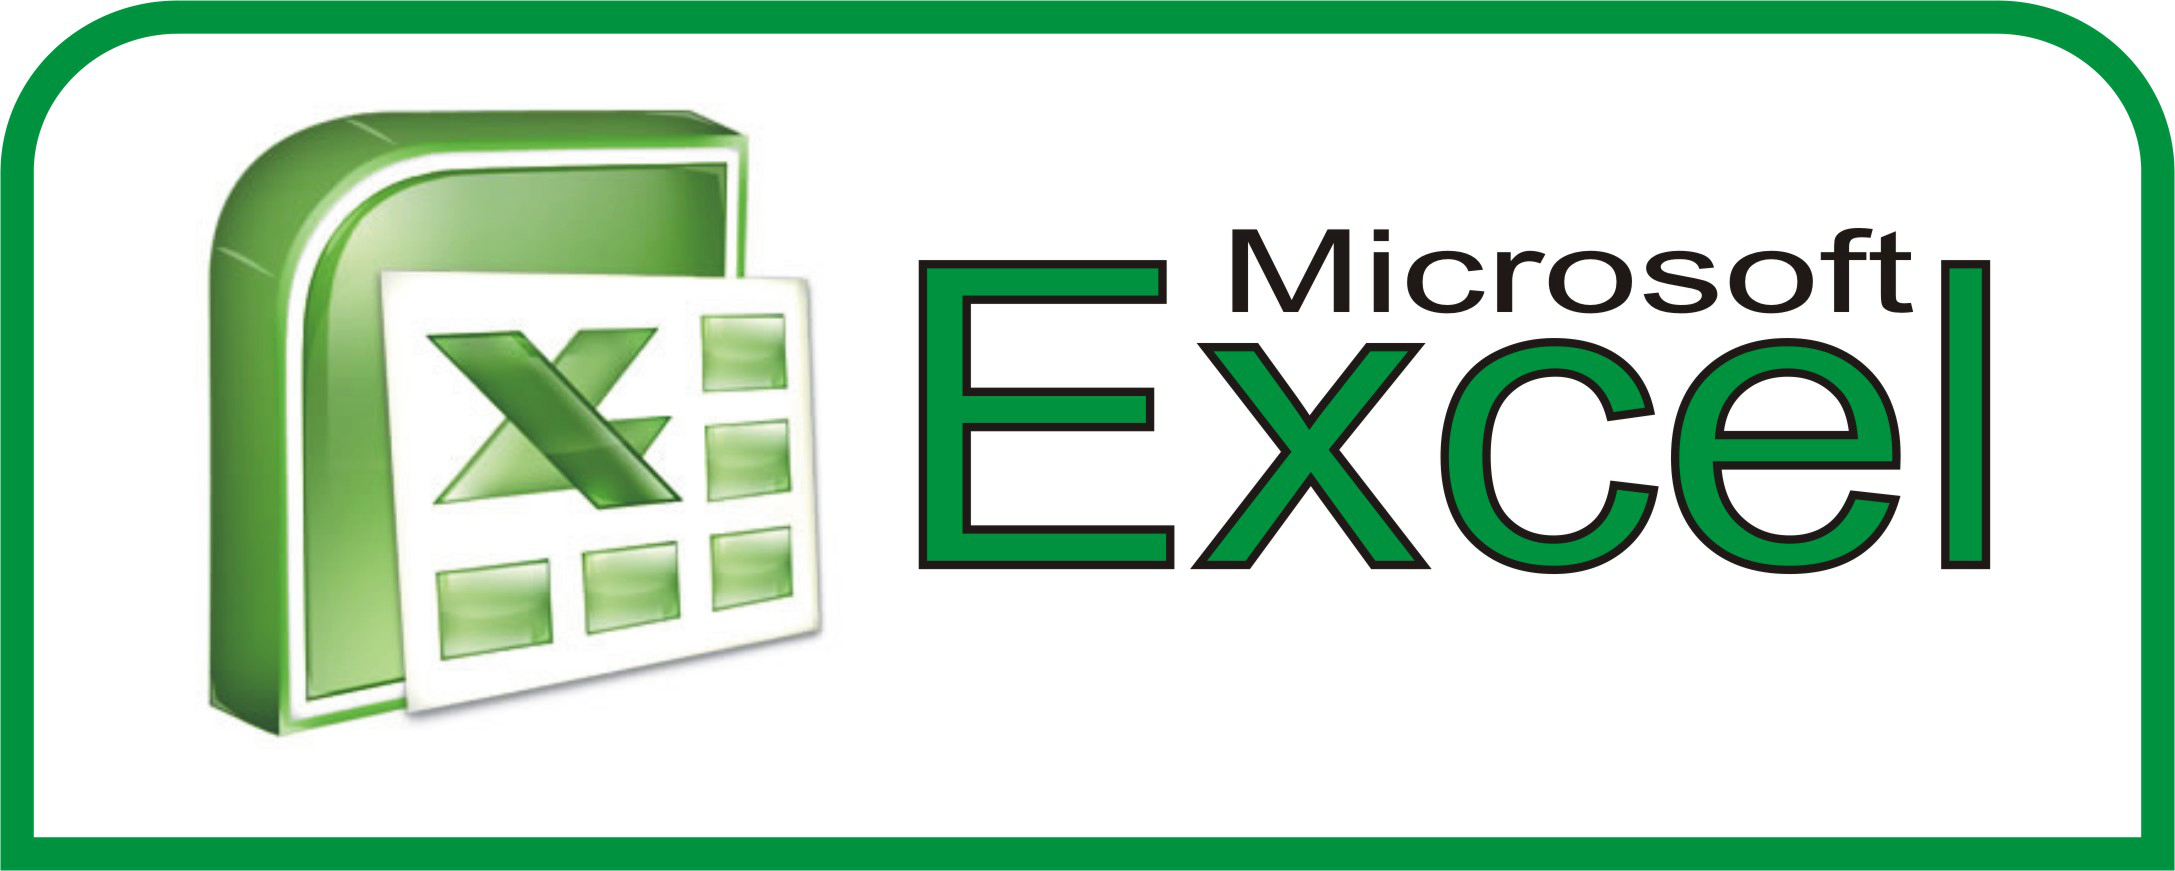 Ediblewildsus  Marvellous  Excel Shortcuts You Probably Didnt Know About  Techdissected With Heavenly Random Sampling In Excel Besides Grouping Worksheets In Excel Furthermore Random Numbers In Excel Without Duplicates With Delectable Wrap Text In Excel  Also Unprotect An Excel Workbook Without Password In Addition Microsoft Excel Expense Tracker Template And If Value Excel As Well As Poi Excel Tutorial Additionally Microsoft Excel Word Powerpoint Free Download From Techdissectedcom With Ediblewildsus  Heavenly  Excel Shortcuts You Probably Didnt Know About  Techdissected With Delectable Random Sampling In Excel Besides Grouping Worksheets In Excel Furthermore Random Numbers In Excel Without Duplicates And Marvellous Wrap Text In Excel  Also Unprotect An Excel Workbook Without Password In Addition Microsoft Excel Expense Tracker Template From Techdissectedcom